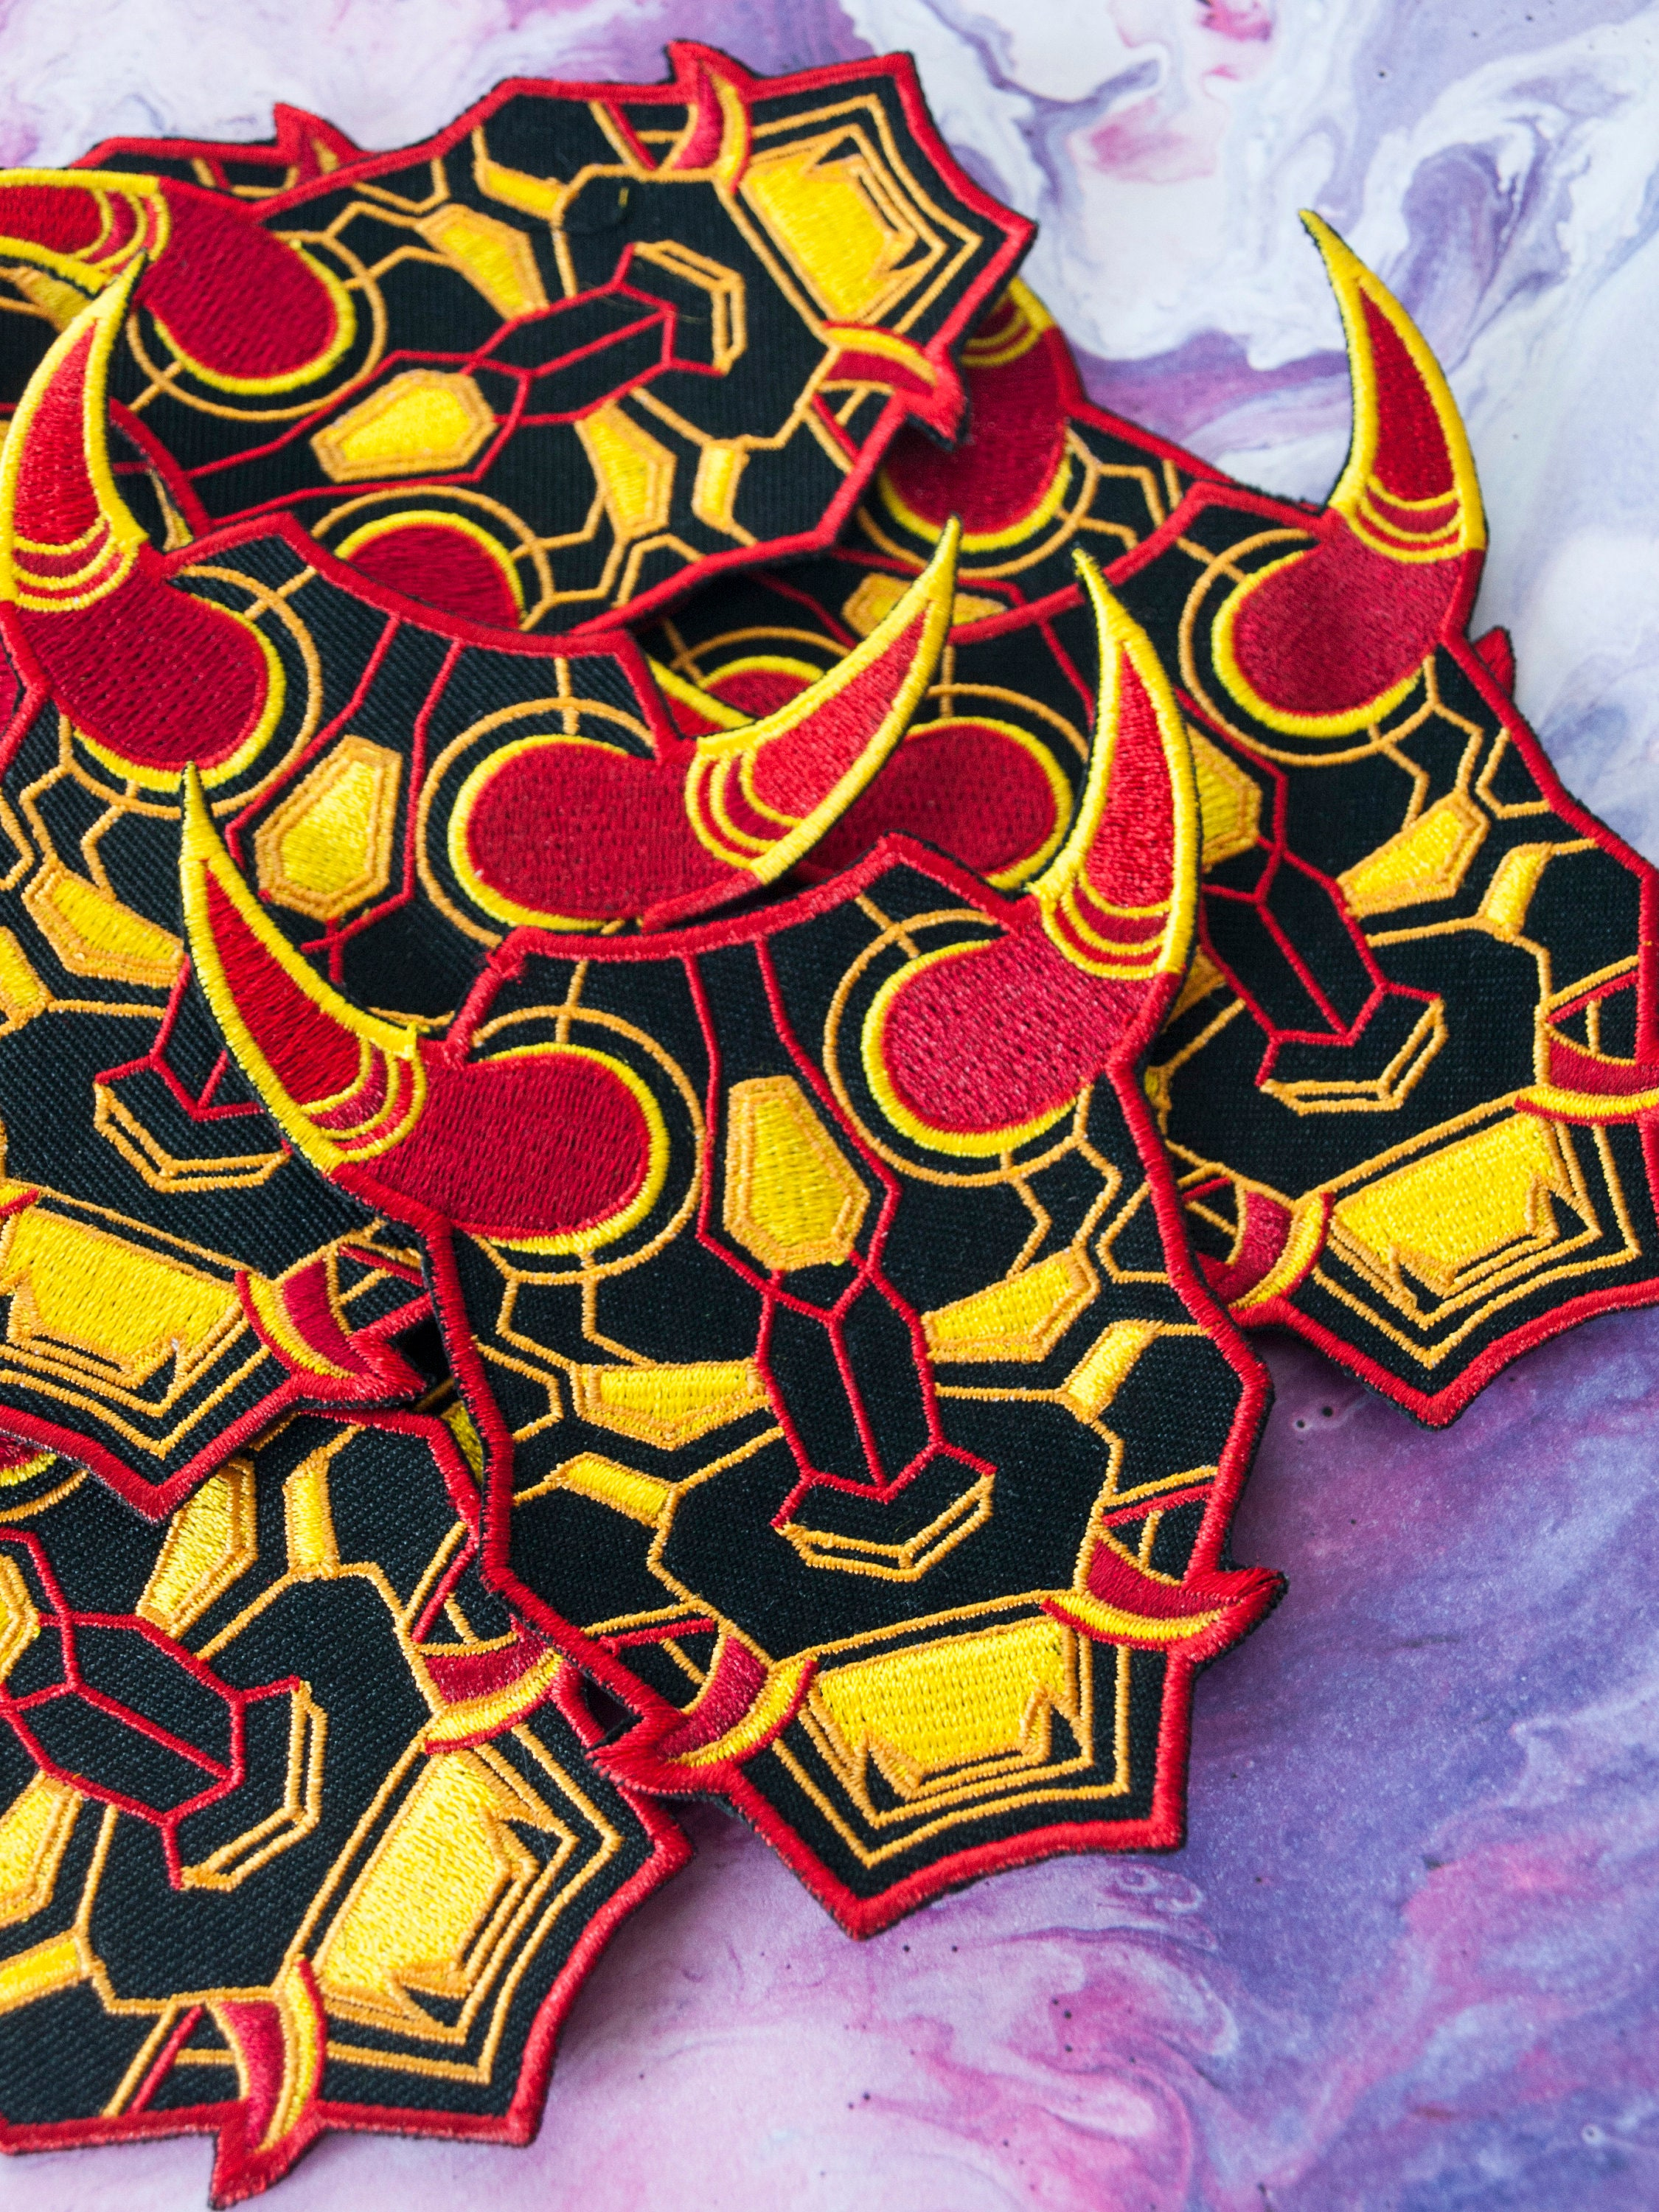 Mecha Oni Mask Embroidered Patch Neon Red Demon Mask Japanese